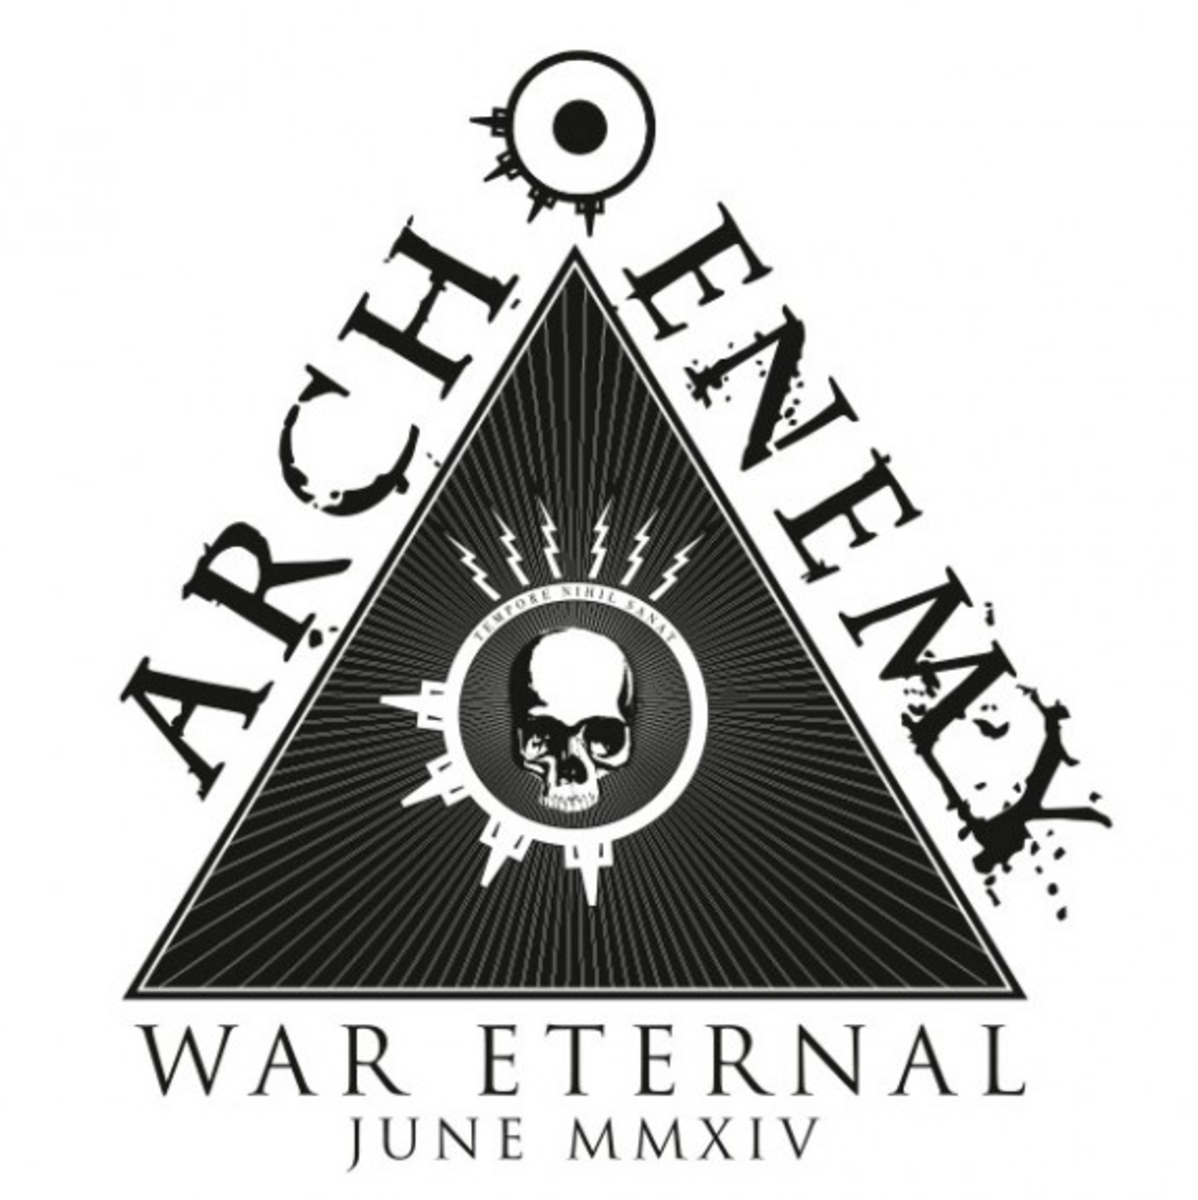 Screen Shot 2014-03-20 at 1.58.58 PM_1.png. Extreme metallers Arch Enemy PlusPng.com  - Arch Enemy PNG